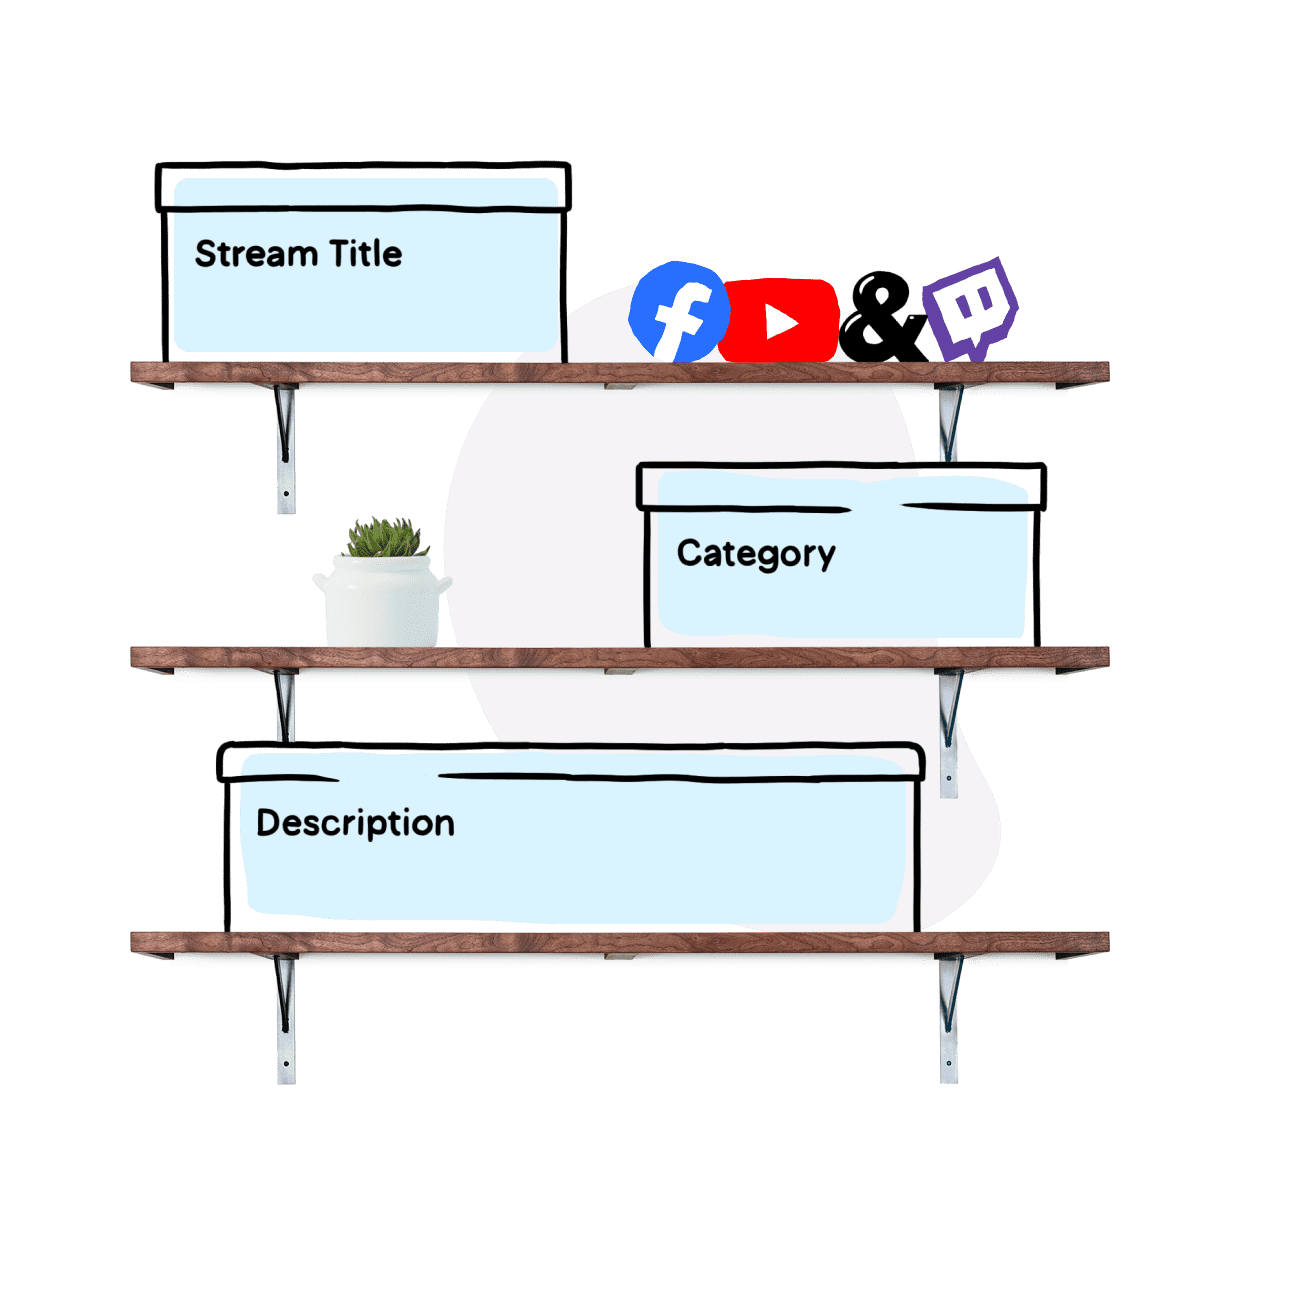 Your streaming meta data easy to set up